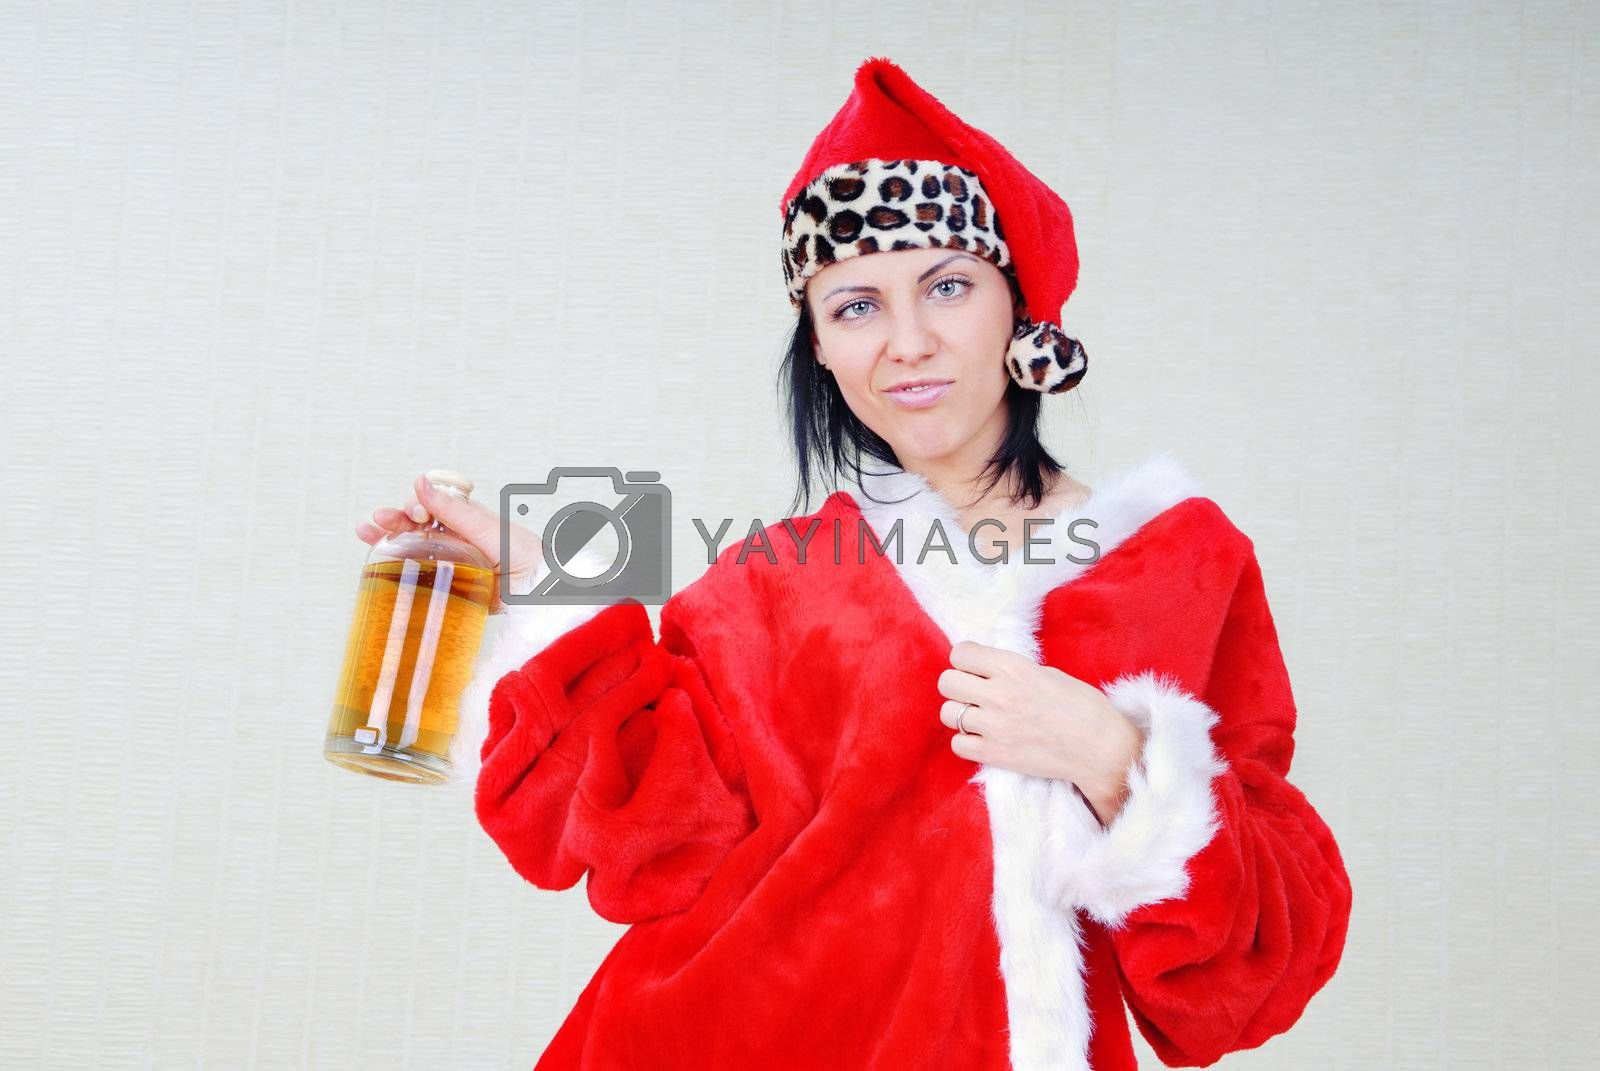 Drunken woman in Santa Claus costume with alcohol beverage